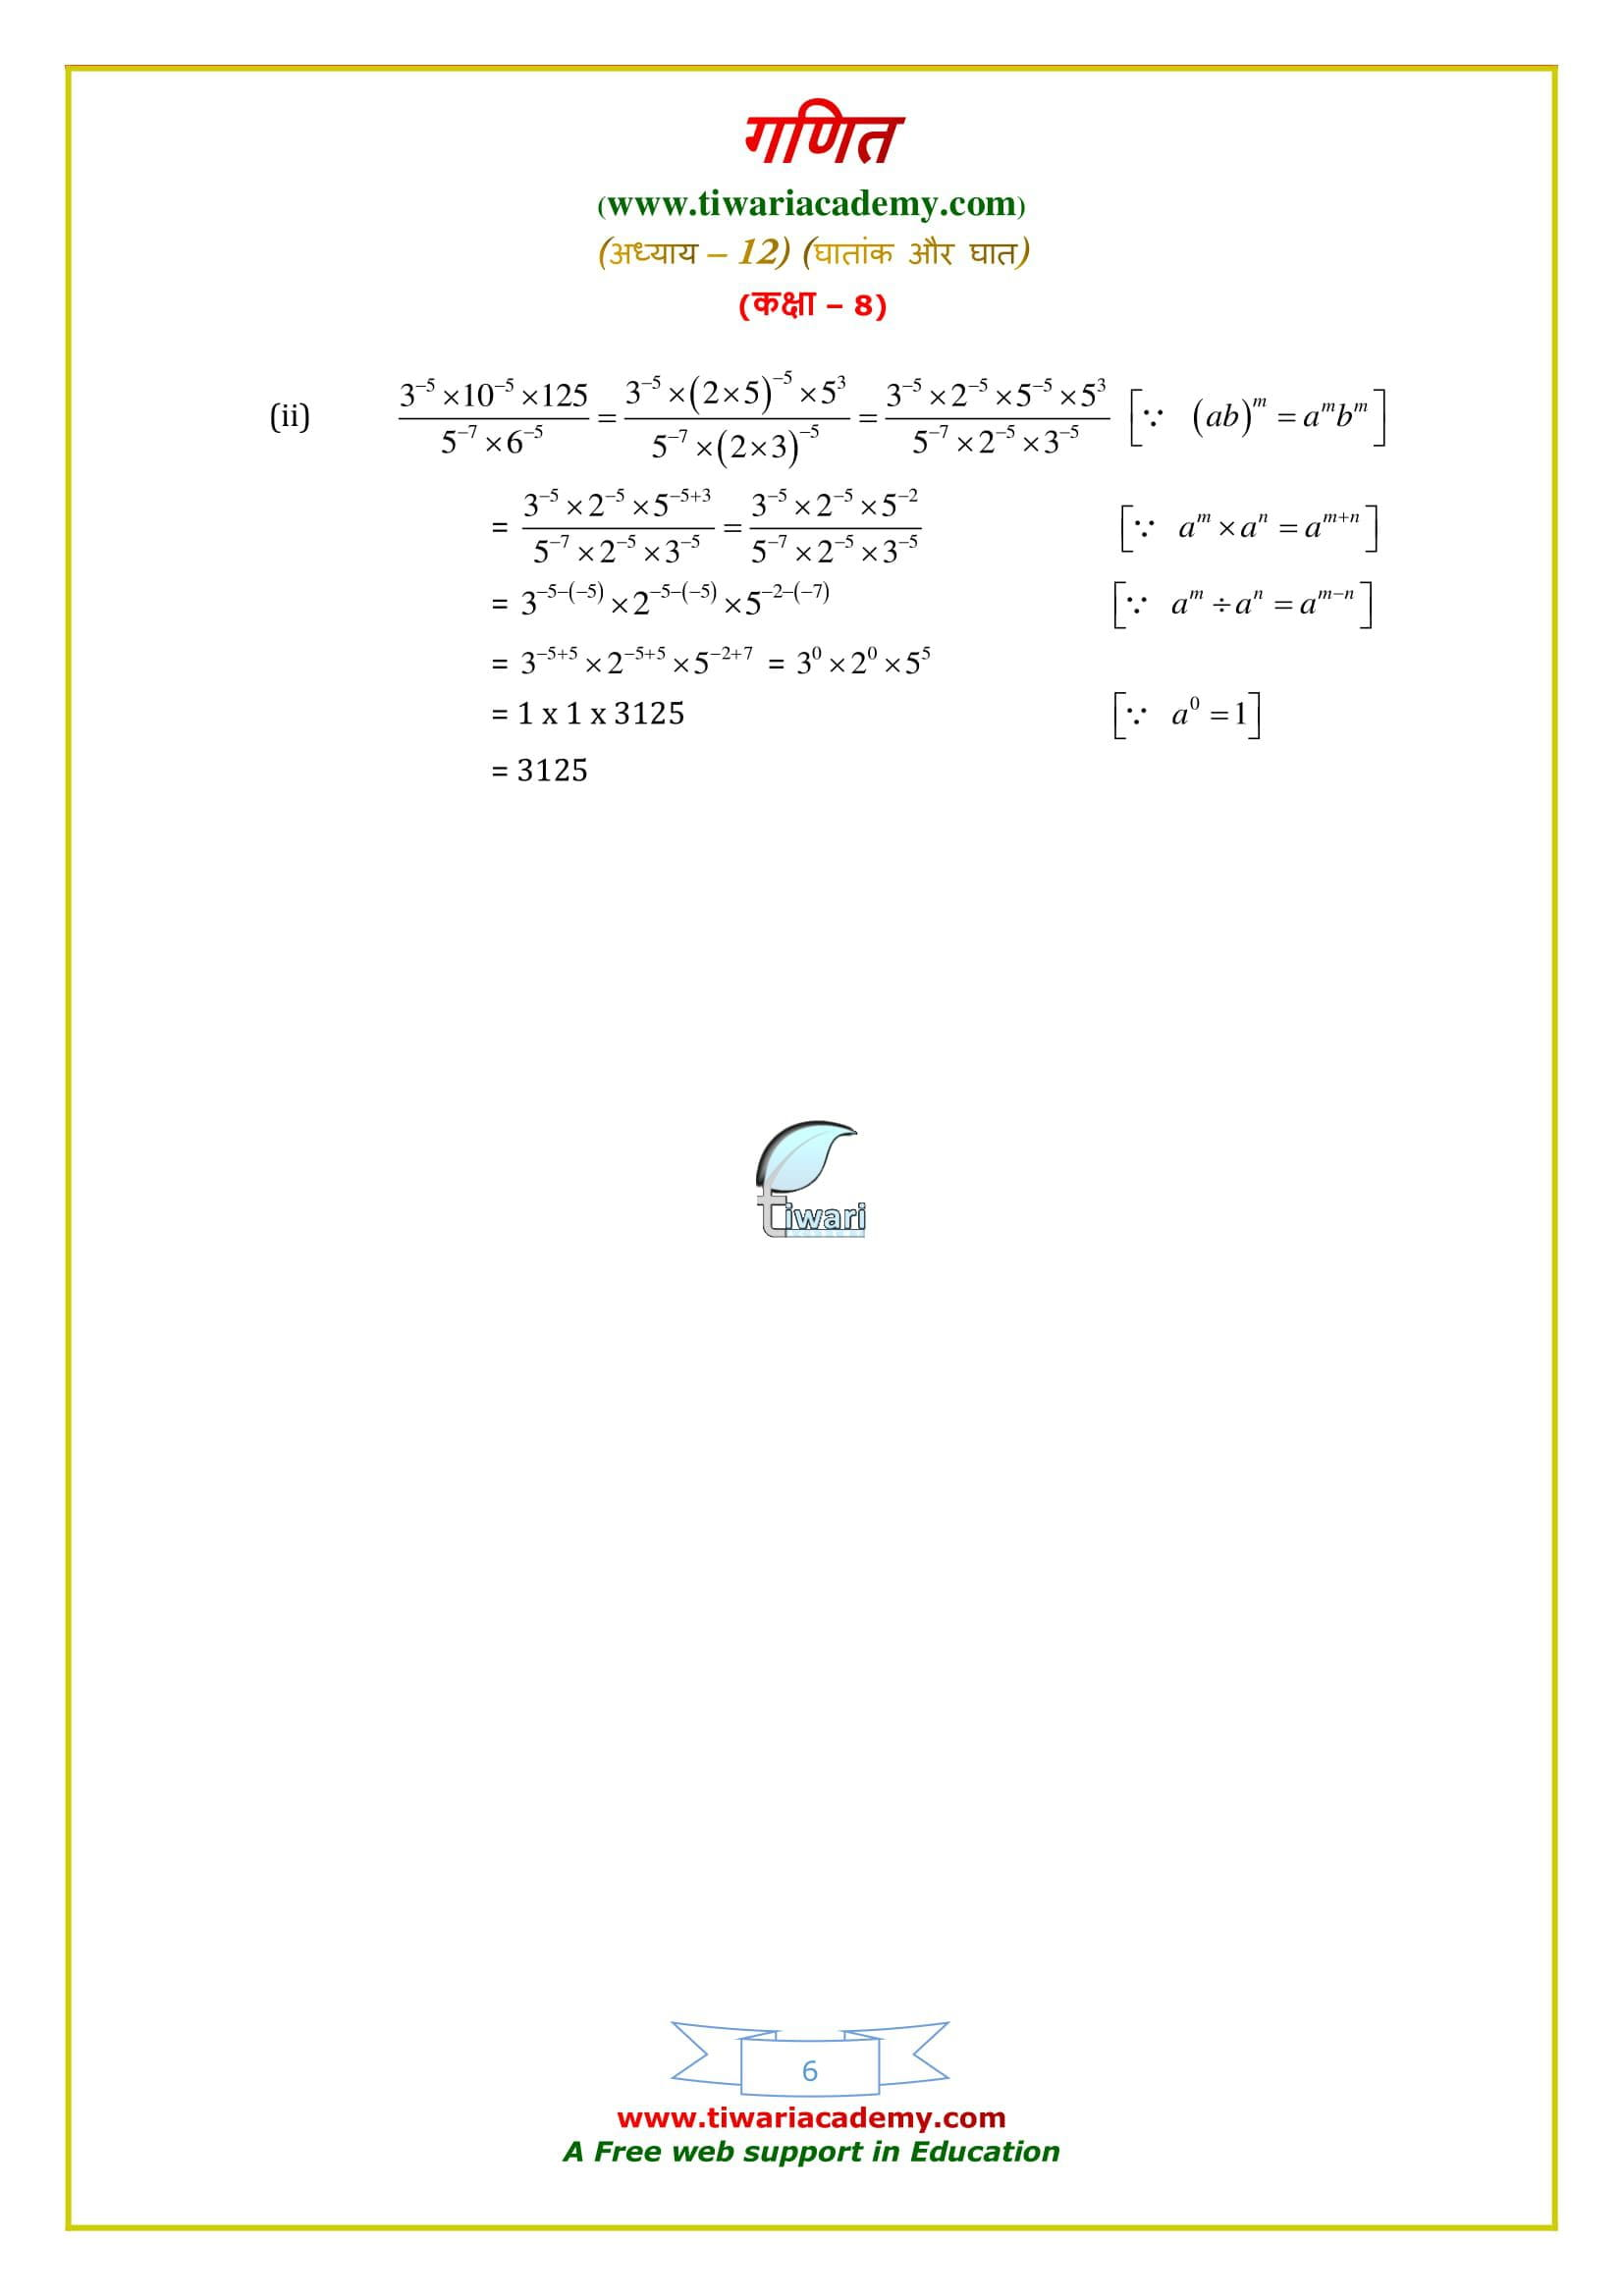 Class 8 Maths Exercise 12.1 solutions free of cost guide